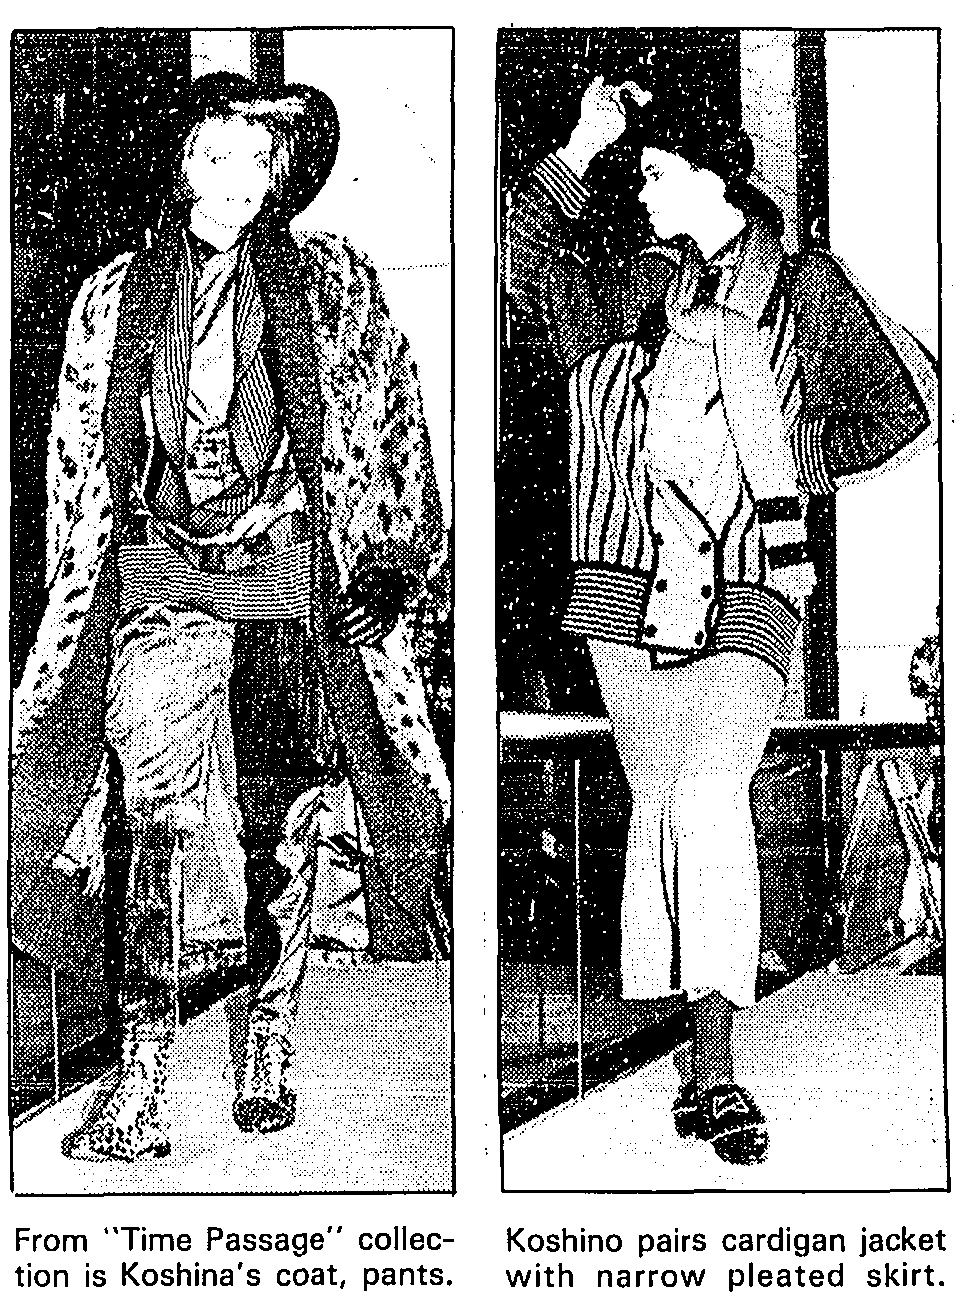 Two looks from Hiroko Koshino. Los Angeles Times, October 11, 1985.